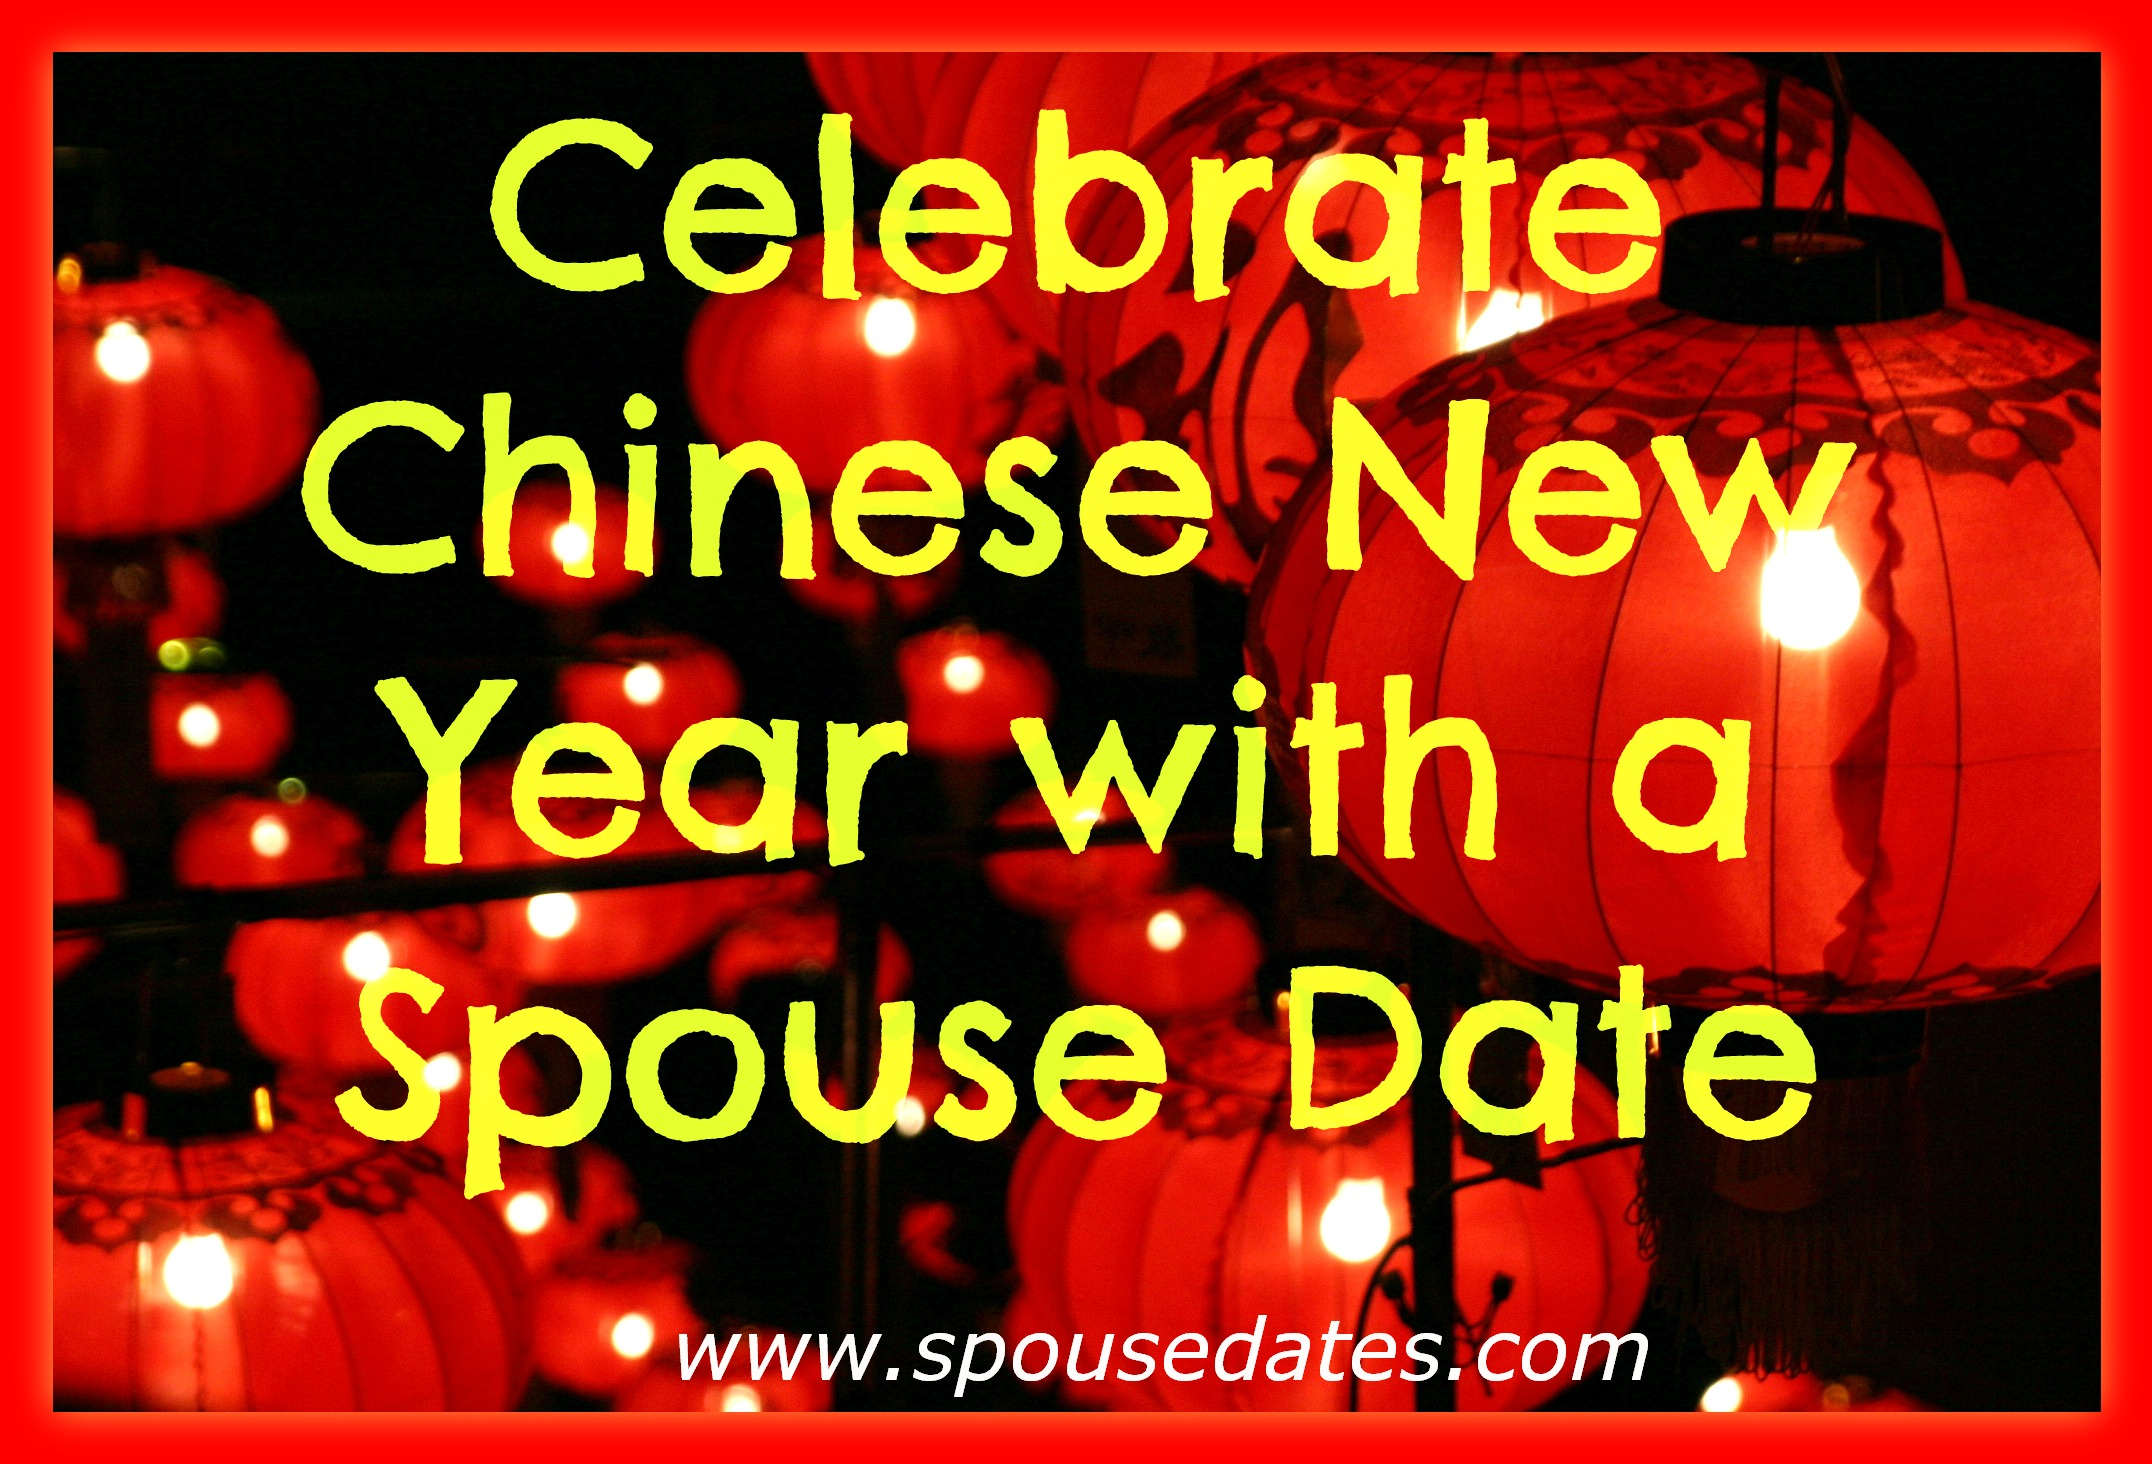 SPOUSE DATES